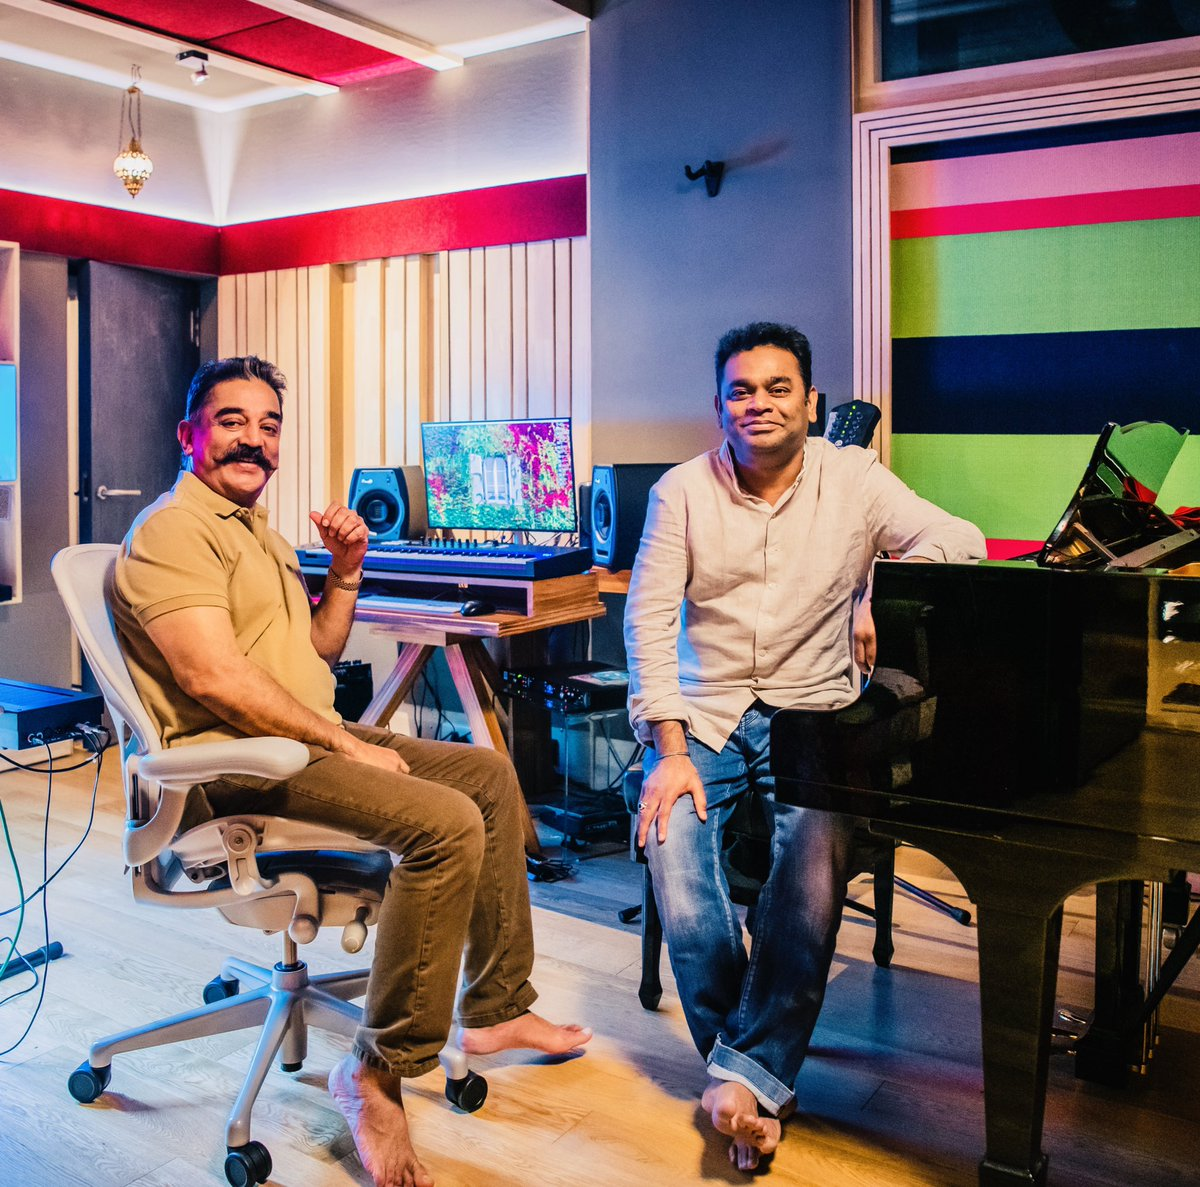 Happy and excited to collaborate with the one and only @ikamalhaasan himself on a magnum opus... Watch this space for more @RKFI @lycaproductions #RKFI #lycaproductions